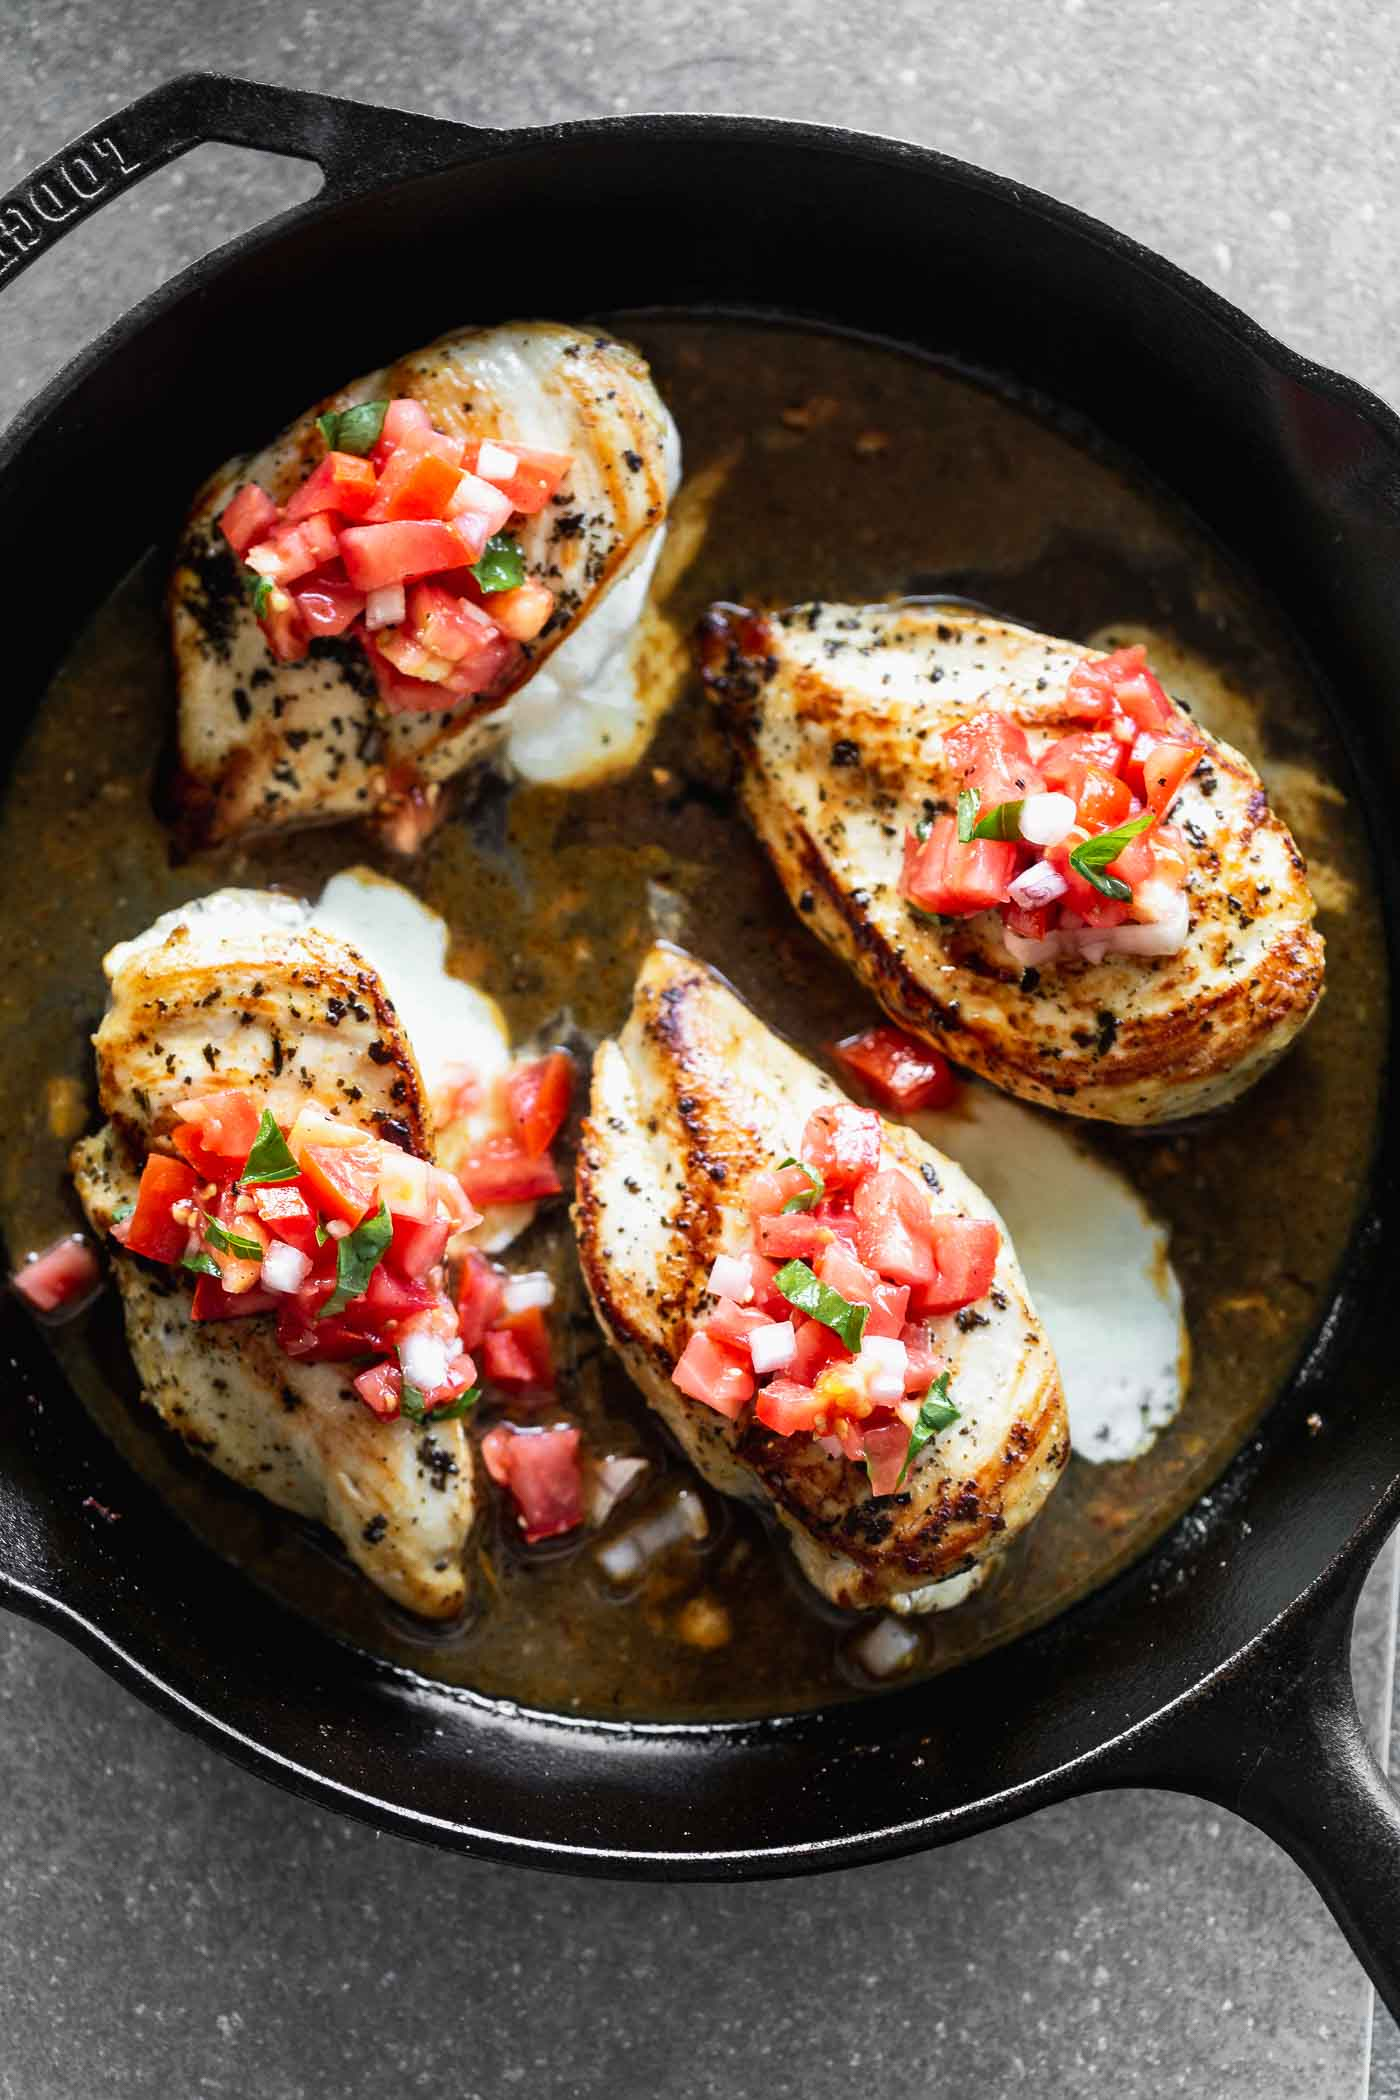 This Cheesy Lemon Chicken with Bruschetta Topping is stuffed with gooey mozzarella cheese, served with an easy pan sauce, and a fresh tomato topping.